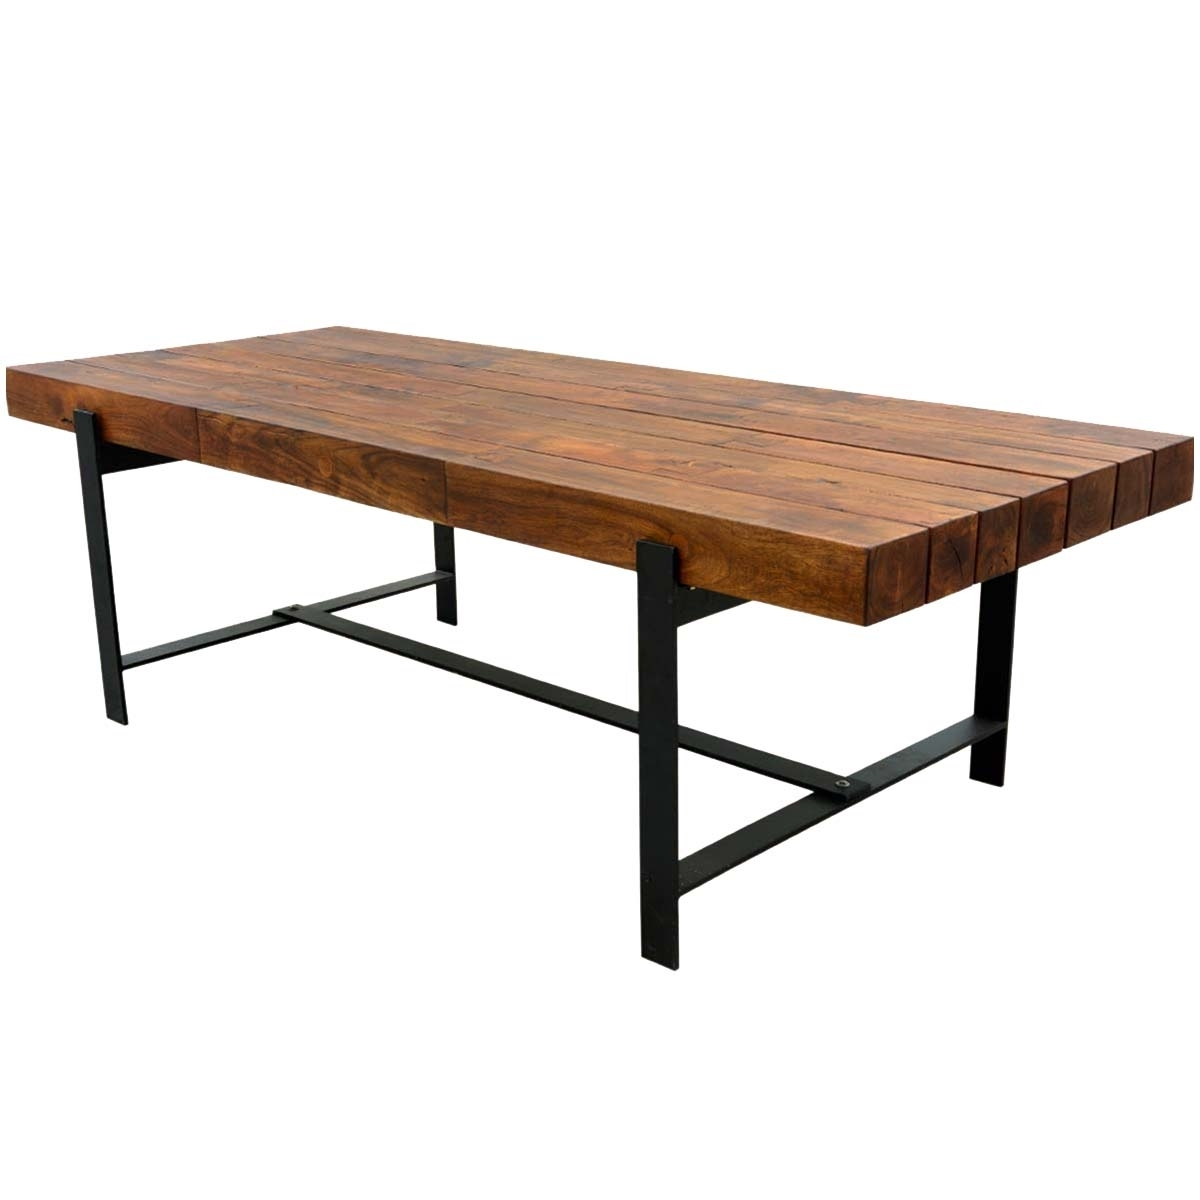 "Acacia Dining Tables In Well Known Industrial Iron & Acacia Wood 94"" Large Rustic Dining Table (Gallery 6 of 25)"